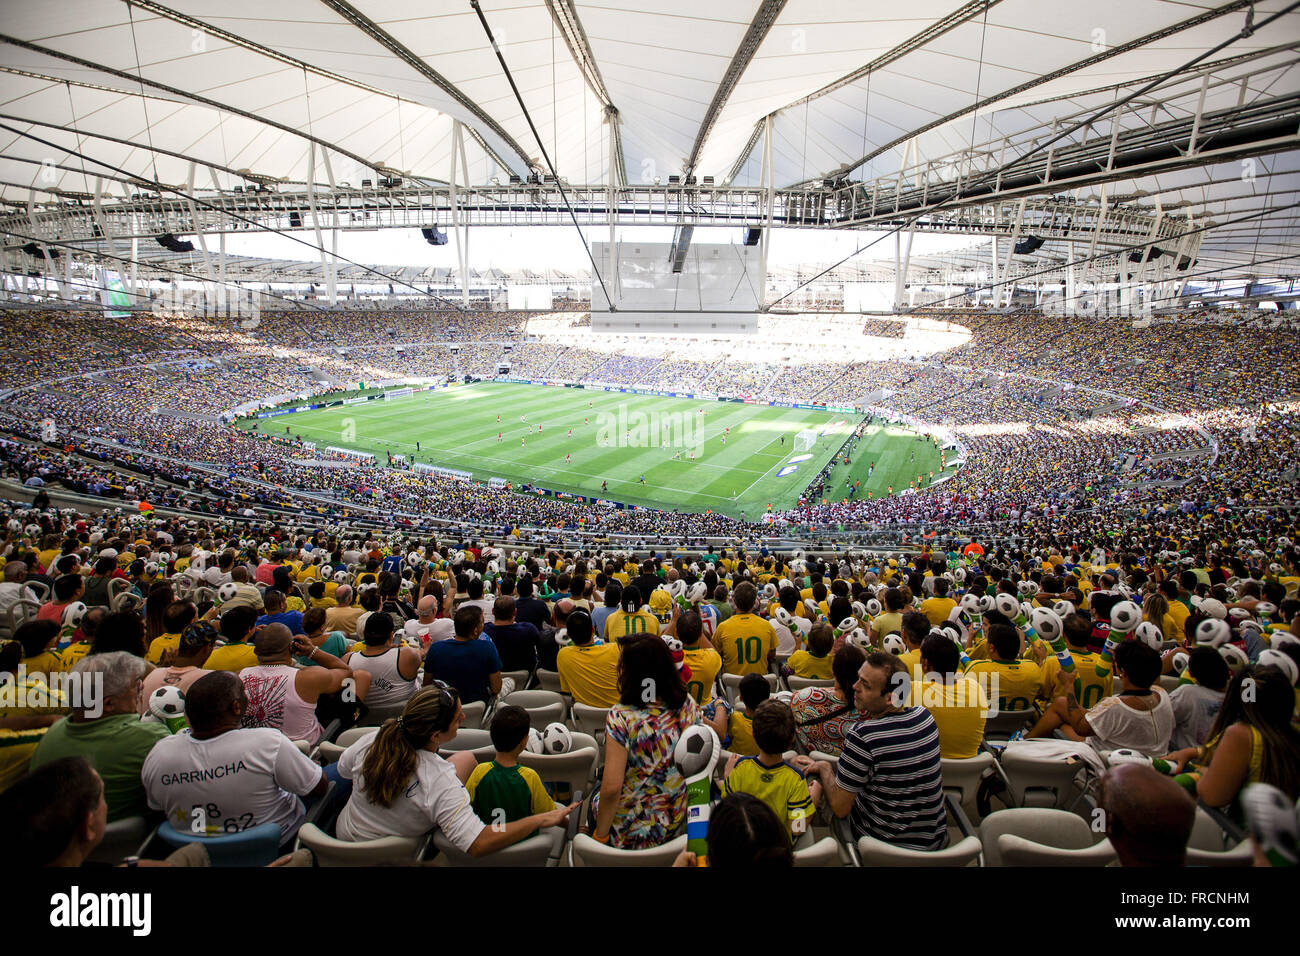 Brazilian fans in the friendly match between Brazil and England - Stock Image